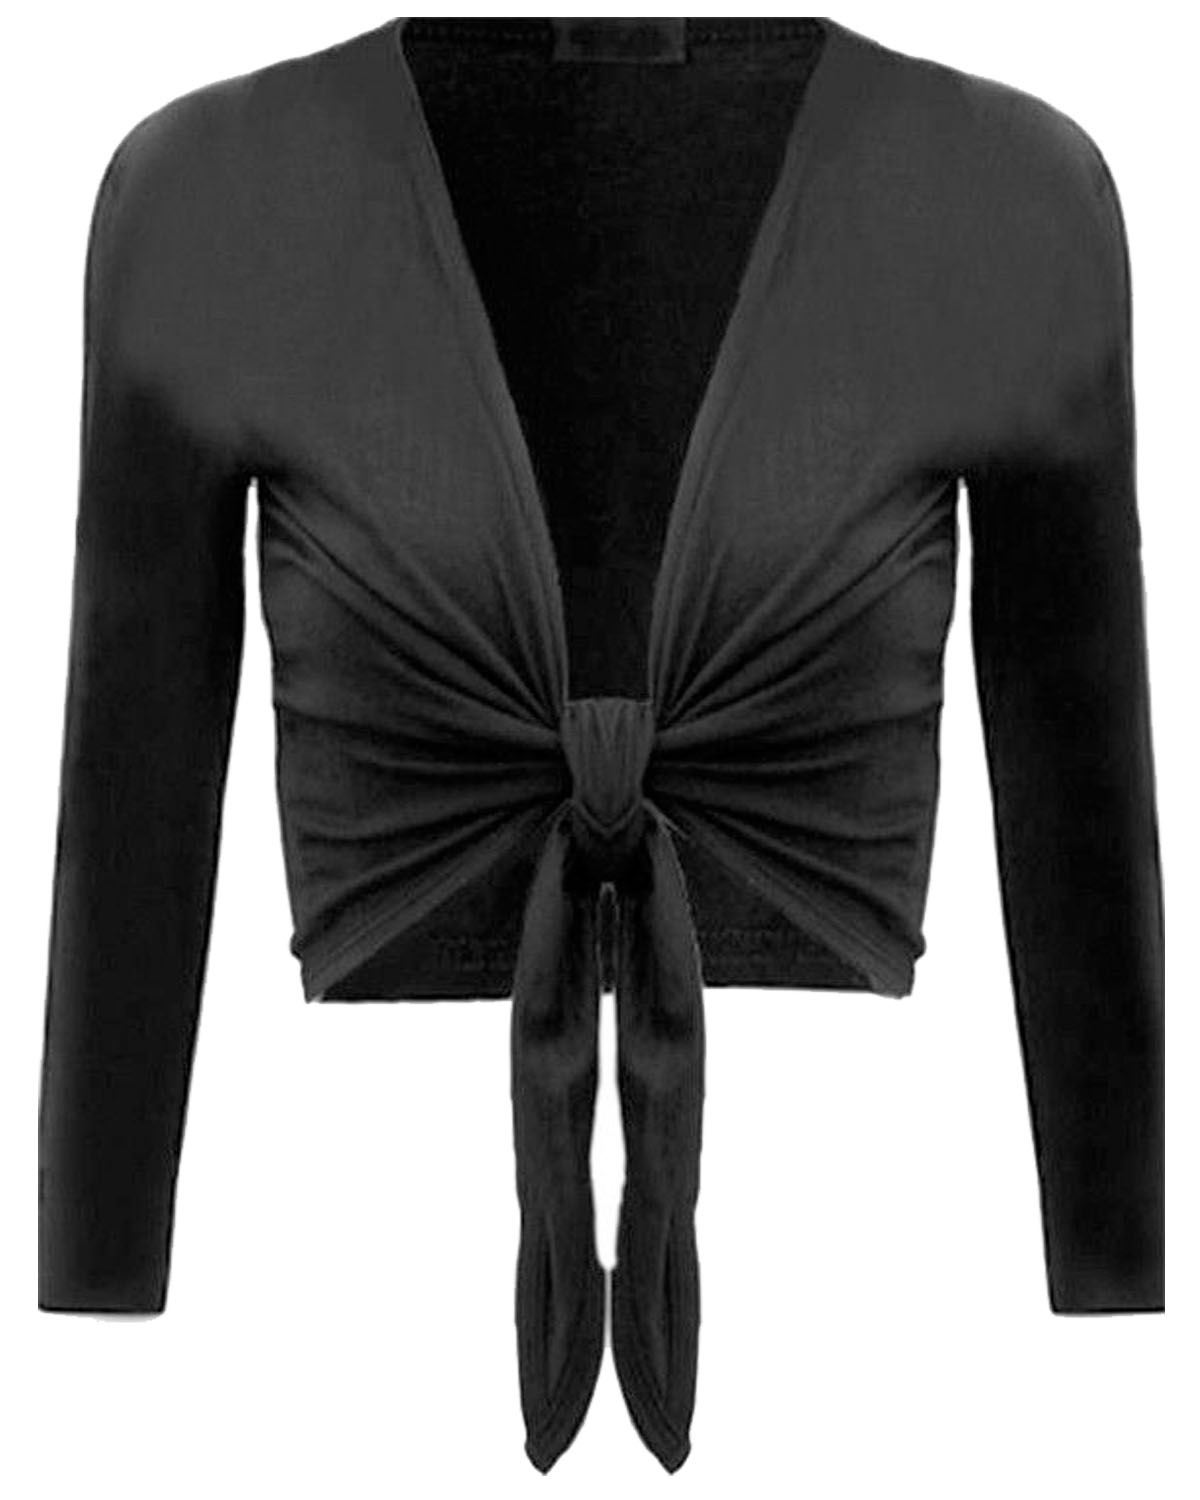 New Girls Ladies Front TIE Up Knot Crop Shrug Wrap Open Bolero ...